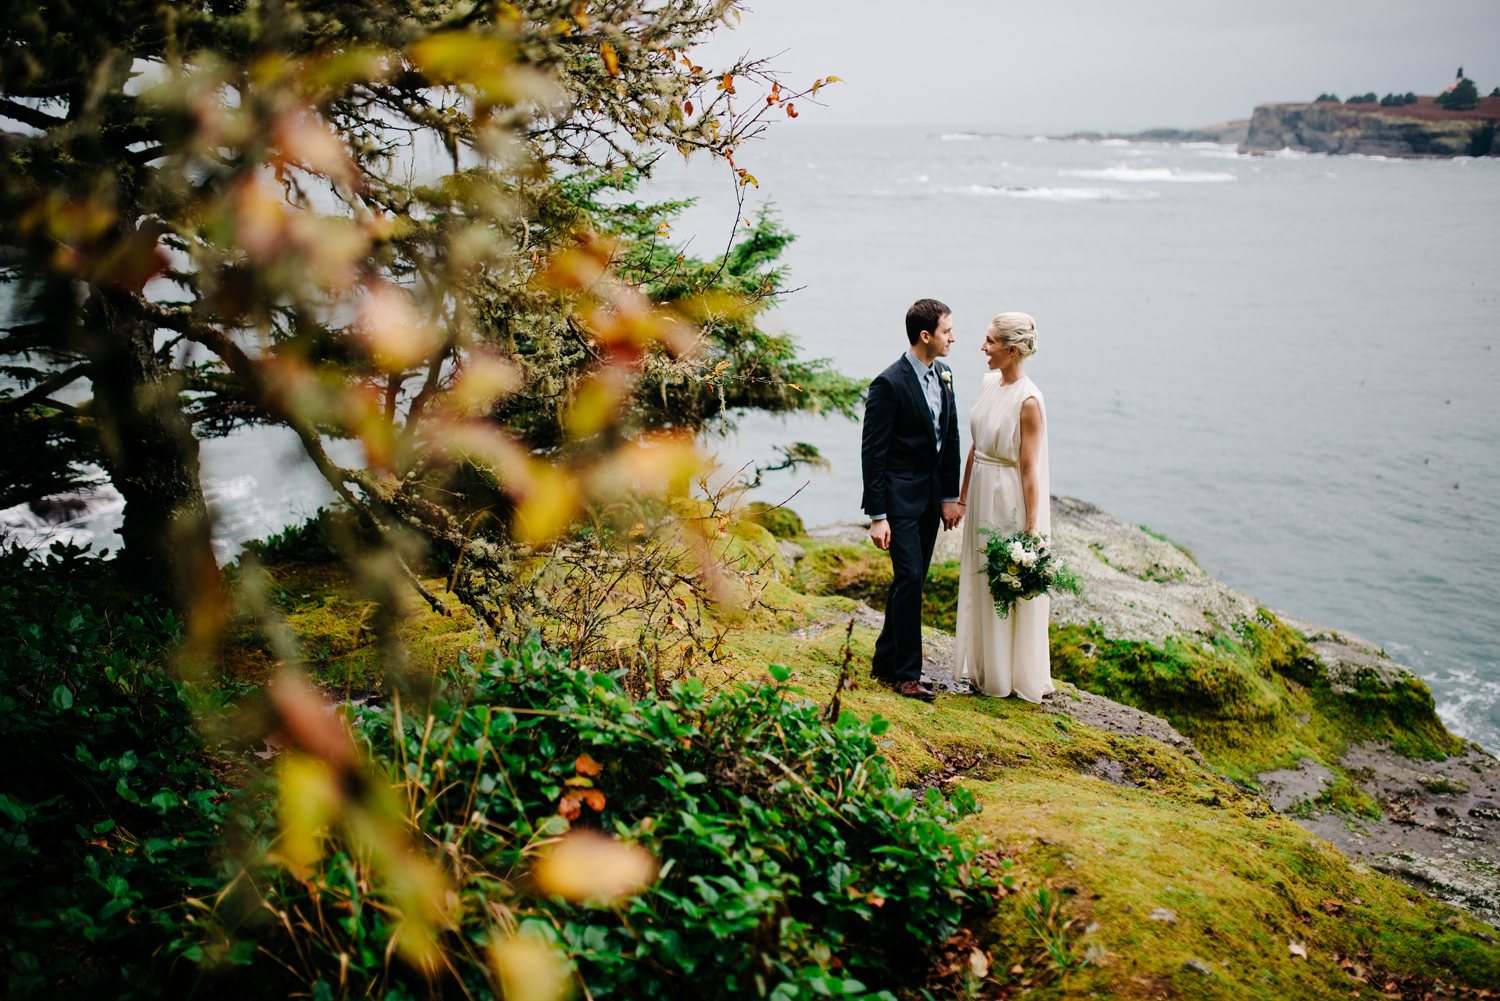 024-pnw-coastal-elopement-at-cape-flattery-by-seattle-wedding-photographer-ryan-flynn.jpg